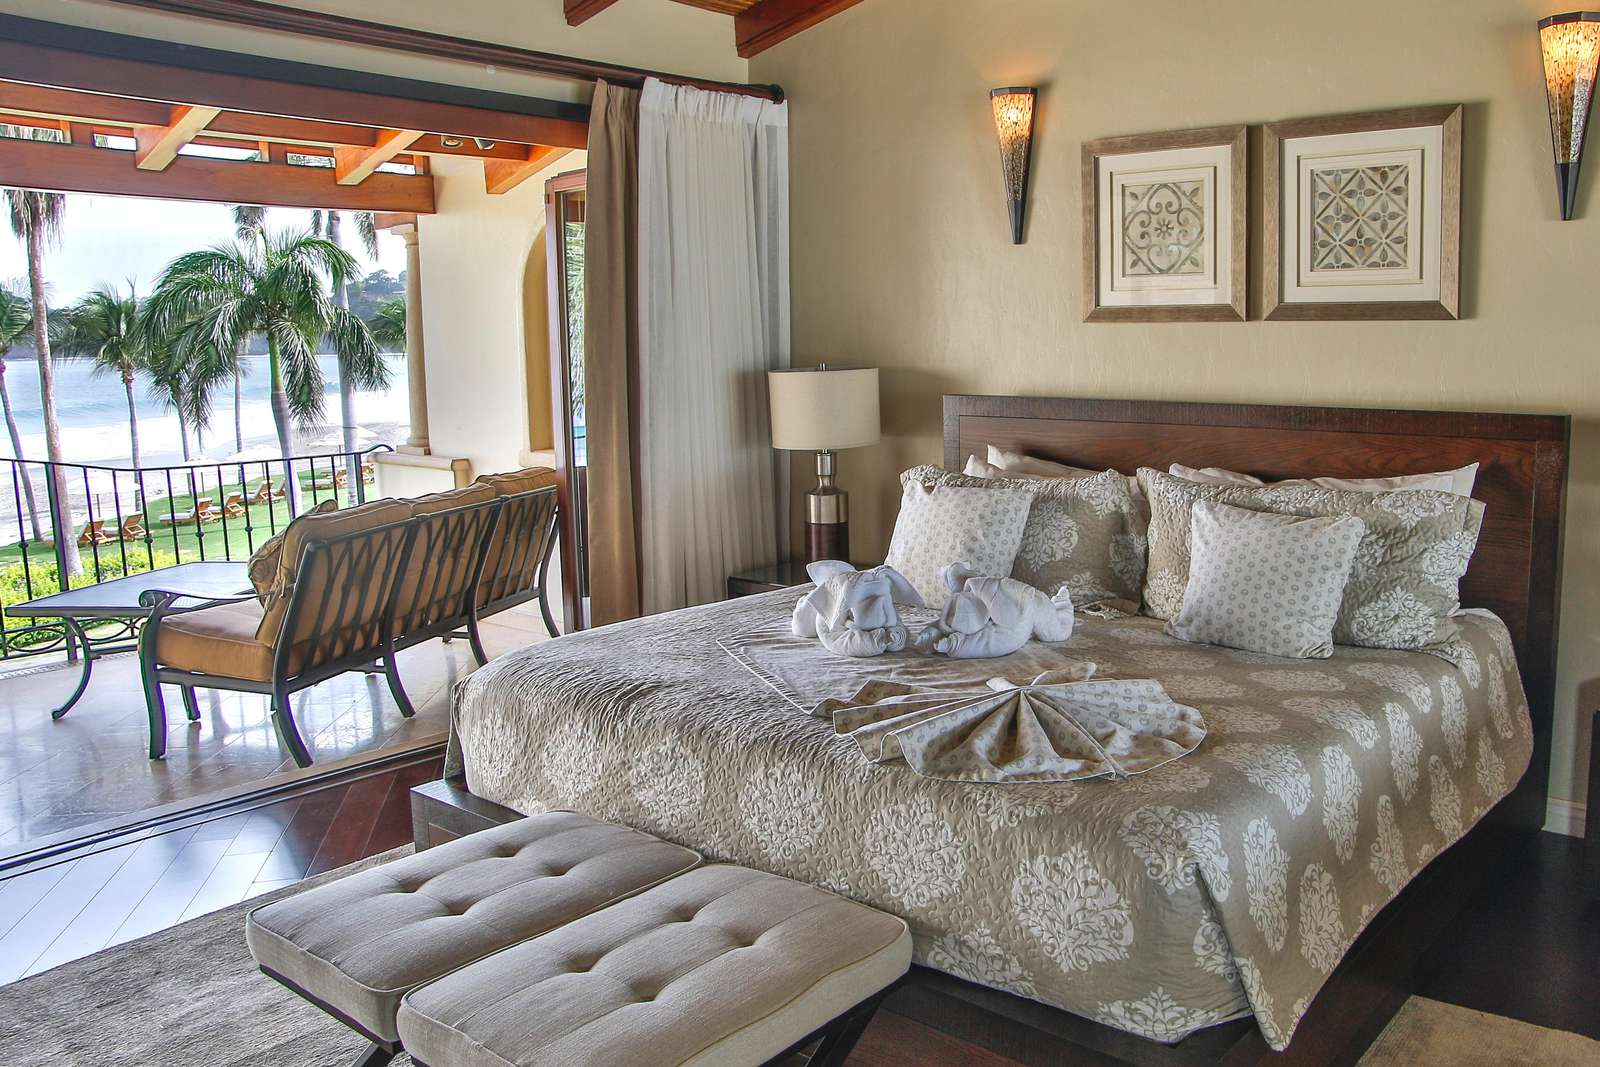 Master bedroom, ocean views, king bed, private bathroom, access to private balcony